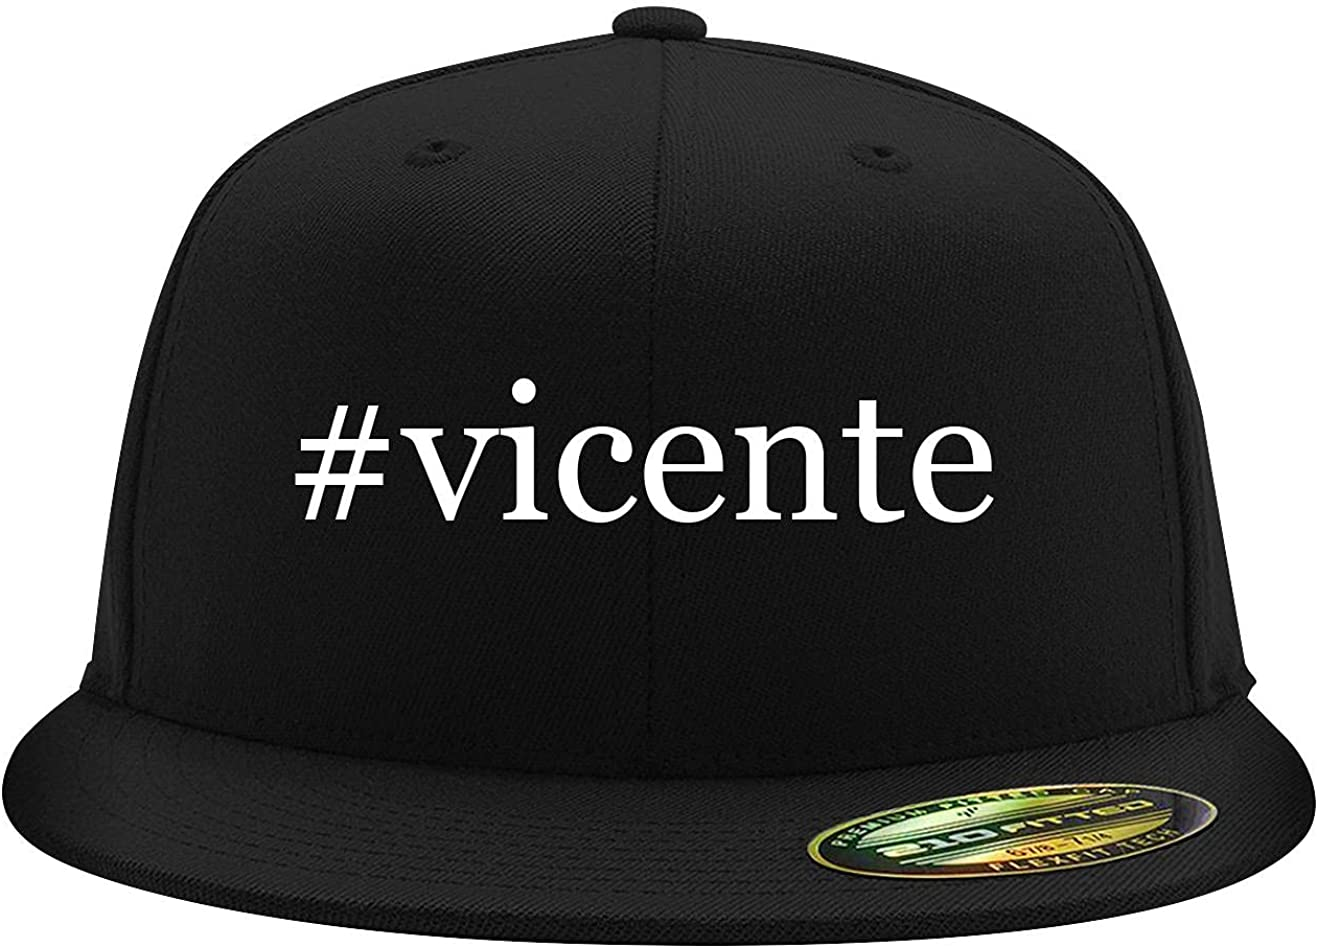 #Vicente - Flexfit 6210 Structured Fitted Inventory cleanup selling sale Flat Ranking TOP2 Hat Bill